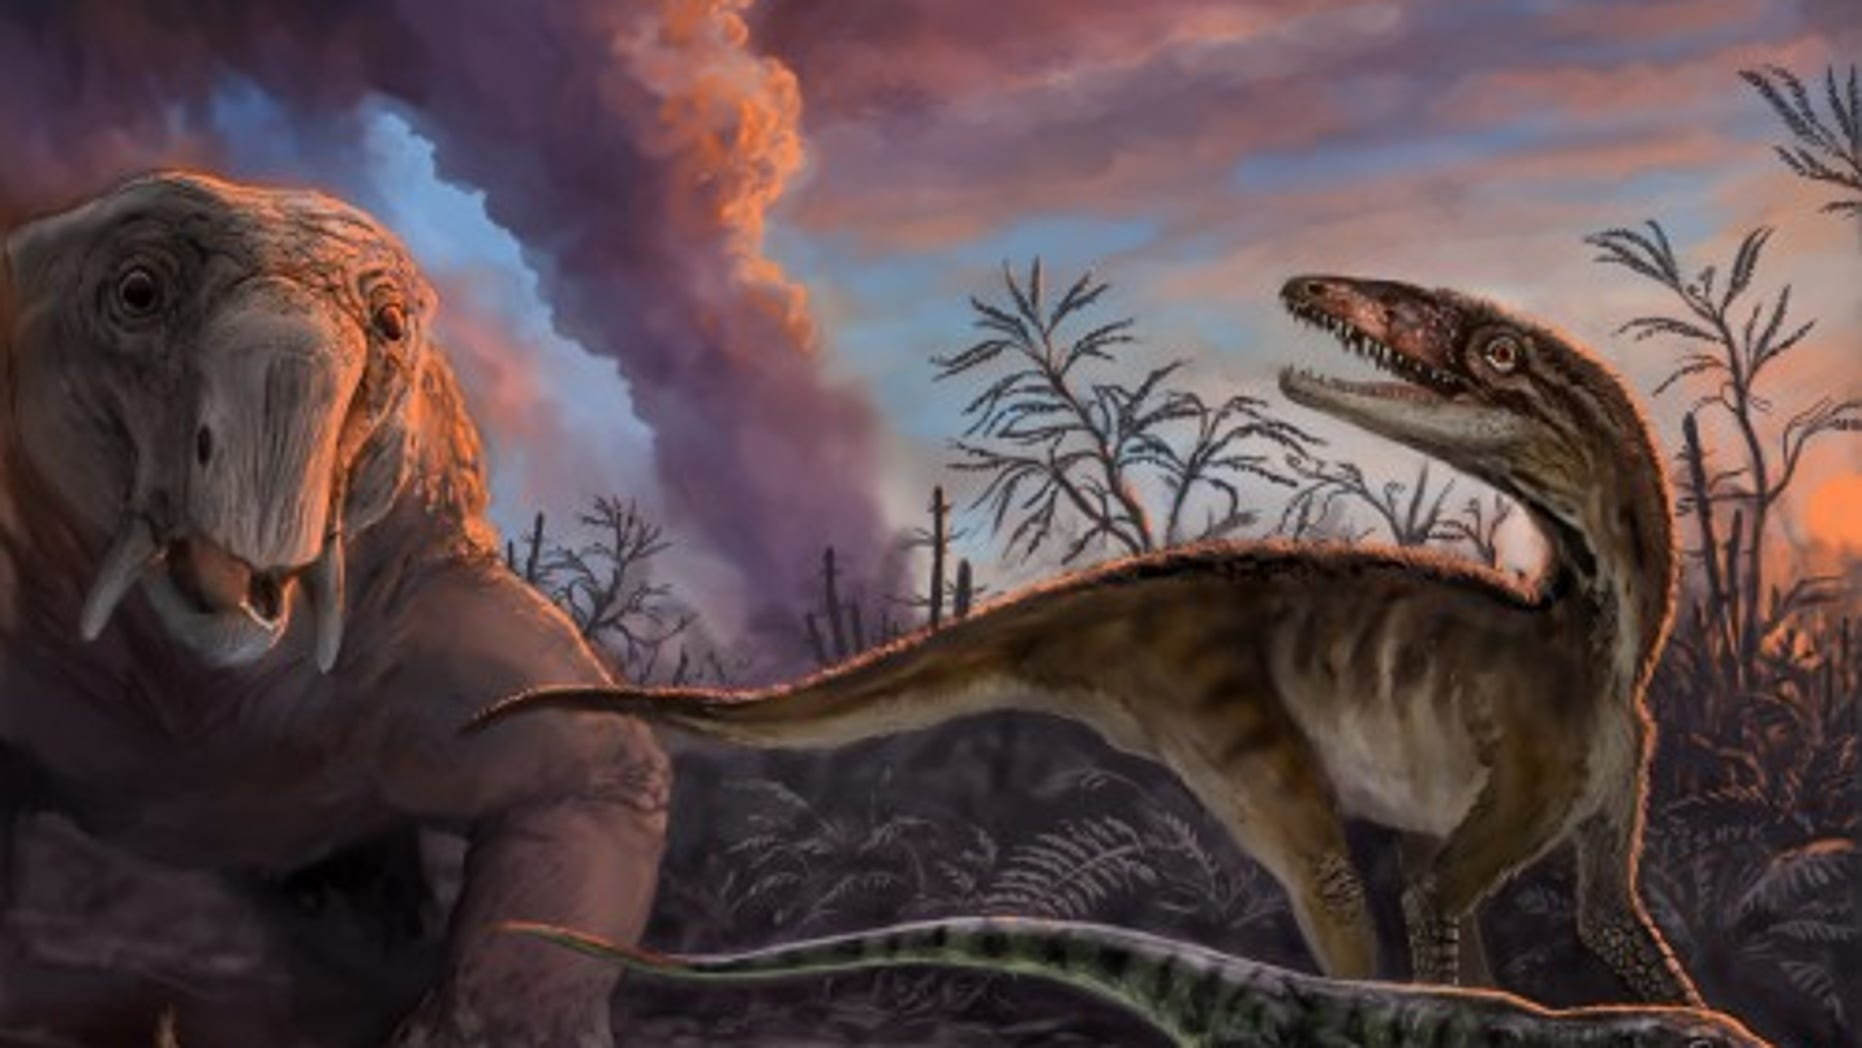 Animals escaping from an erupting volcano 235 million years ago in northwestern Argentina. These species, found as fossils in the Chañares Formation, include early mammal relatives (the dicynodont Dinodontosaurus in the left background, and the cynodont Massetognathus in the left foreground) and early dinosaur precursors (Lewisuchus in the right background, and Lagerpeton in the right foreground). By measuring radioactive isotopes in zircons crystals from the volcanic ash, scientists were able to determine the precise age of this fossil assemblage. (Victor Leshyk)